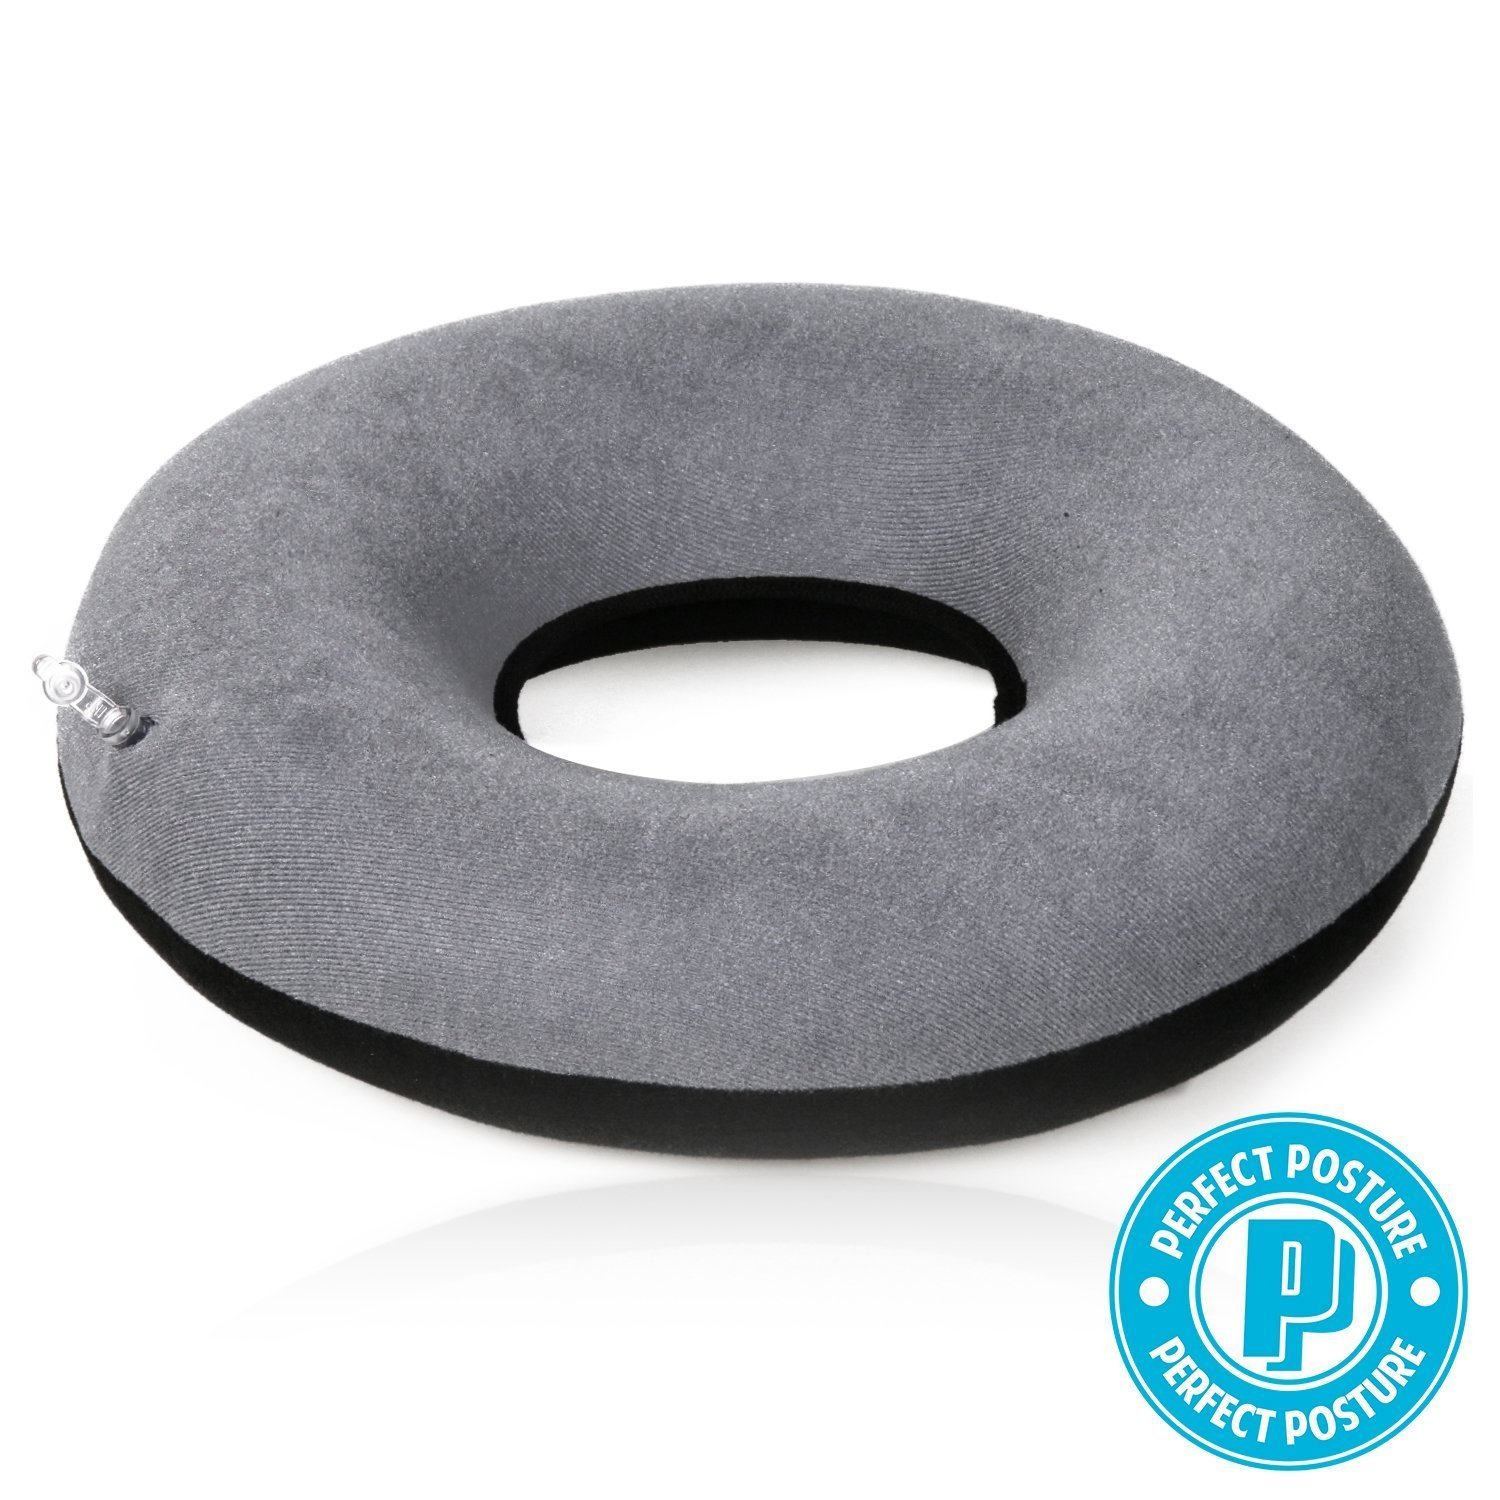 Amazon.com: Carex Inflatable Ring Cushion, Rubber: Health